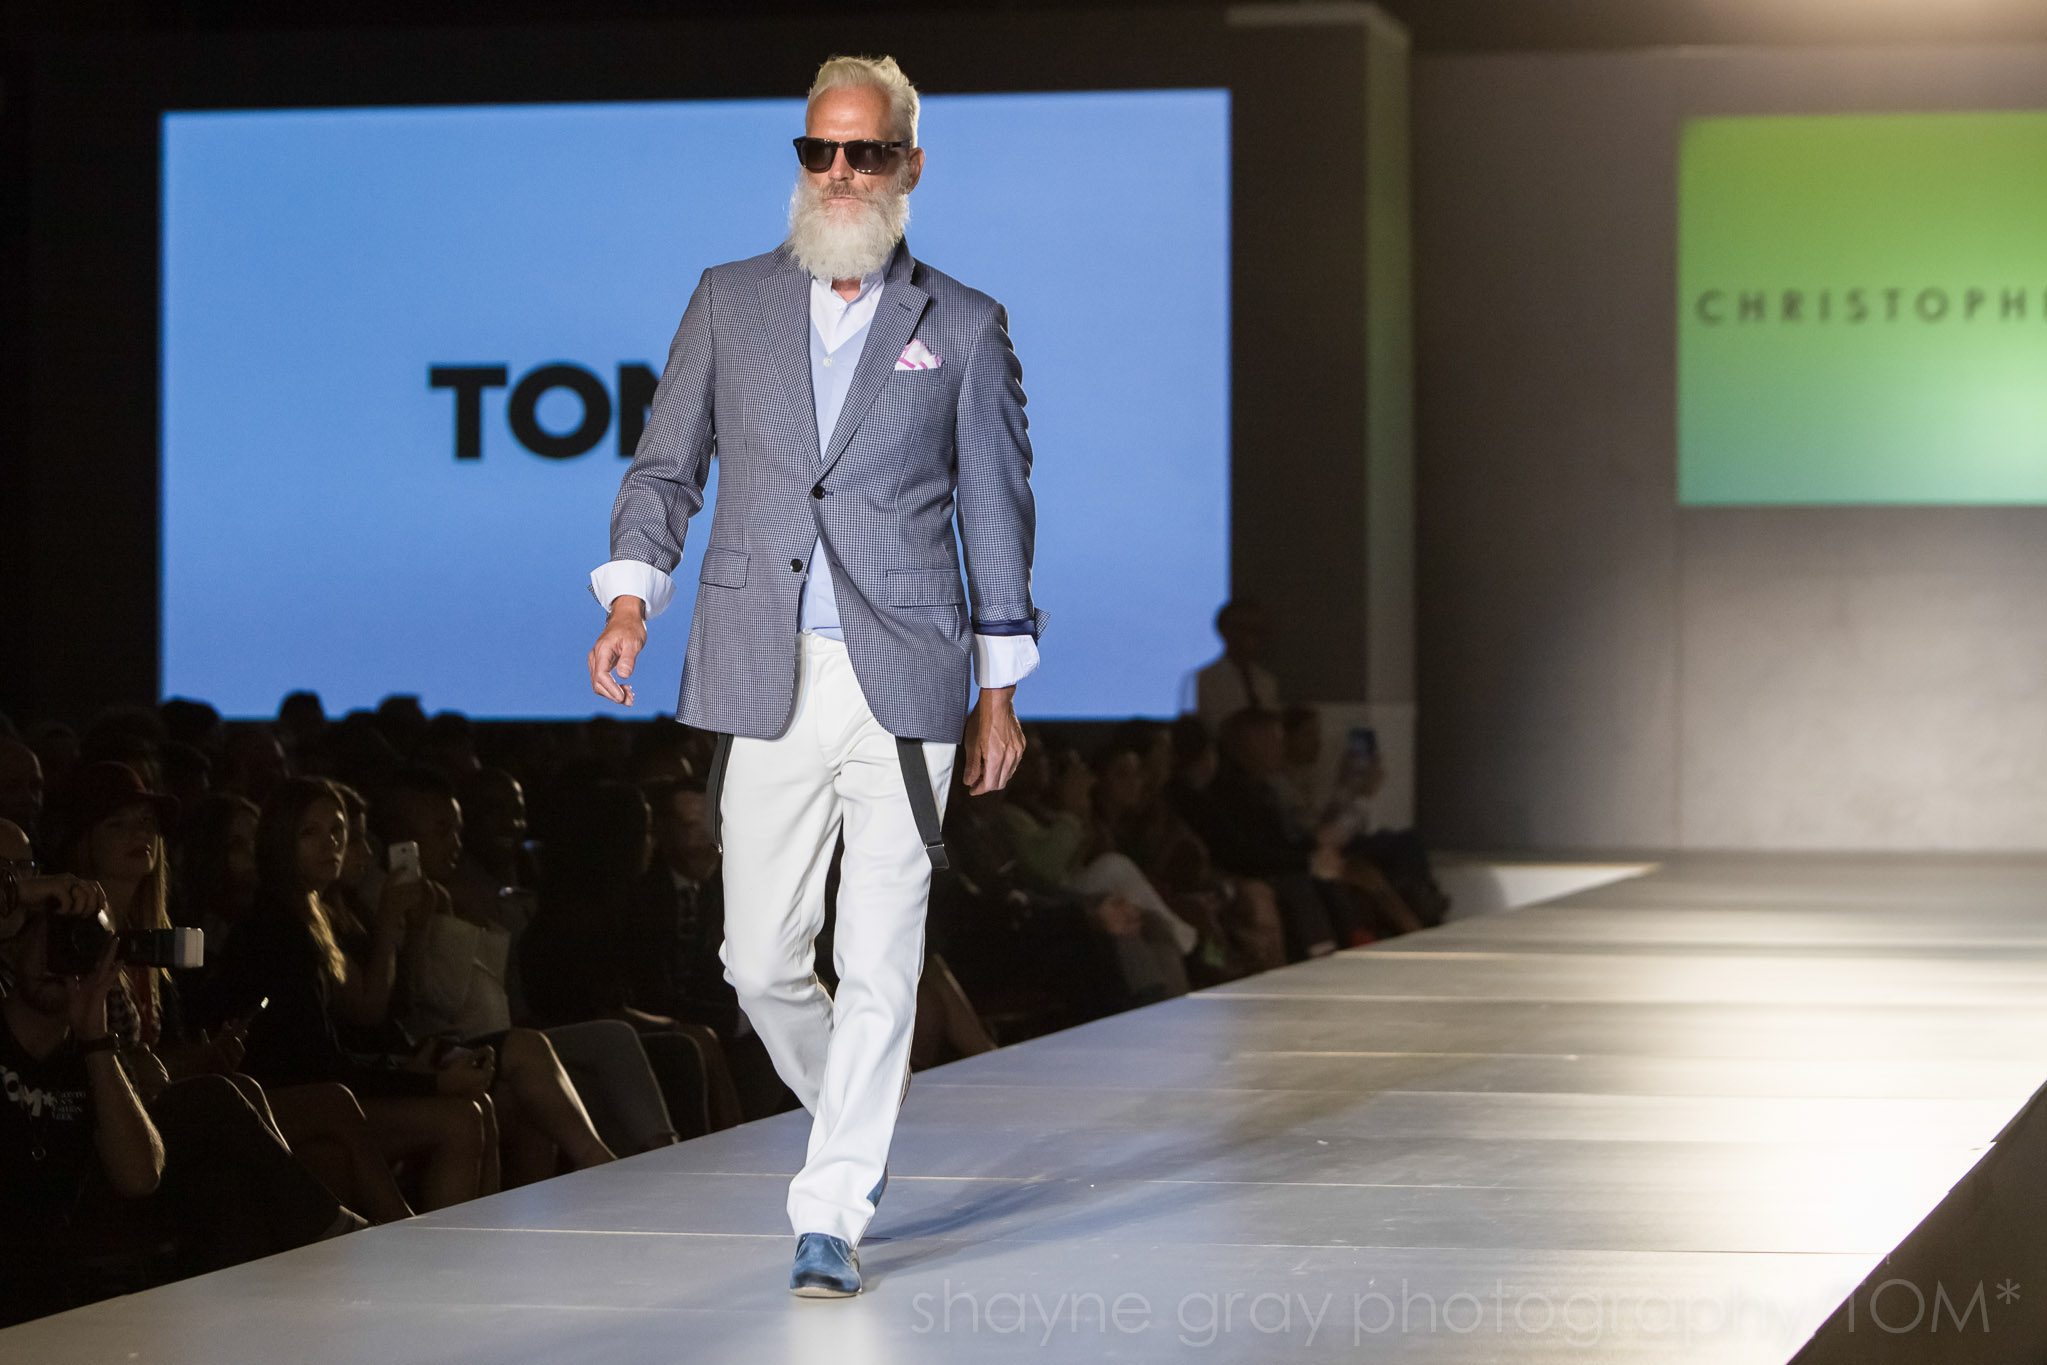 Shayne-Gray-Toronto-men's-fashion_week-TOM-christopher-bates-7179.jpg